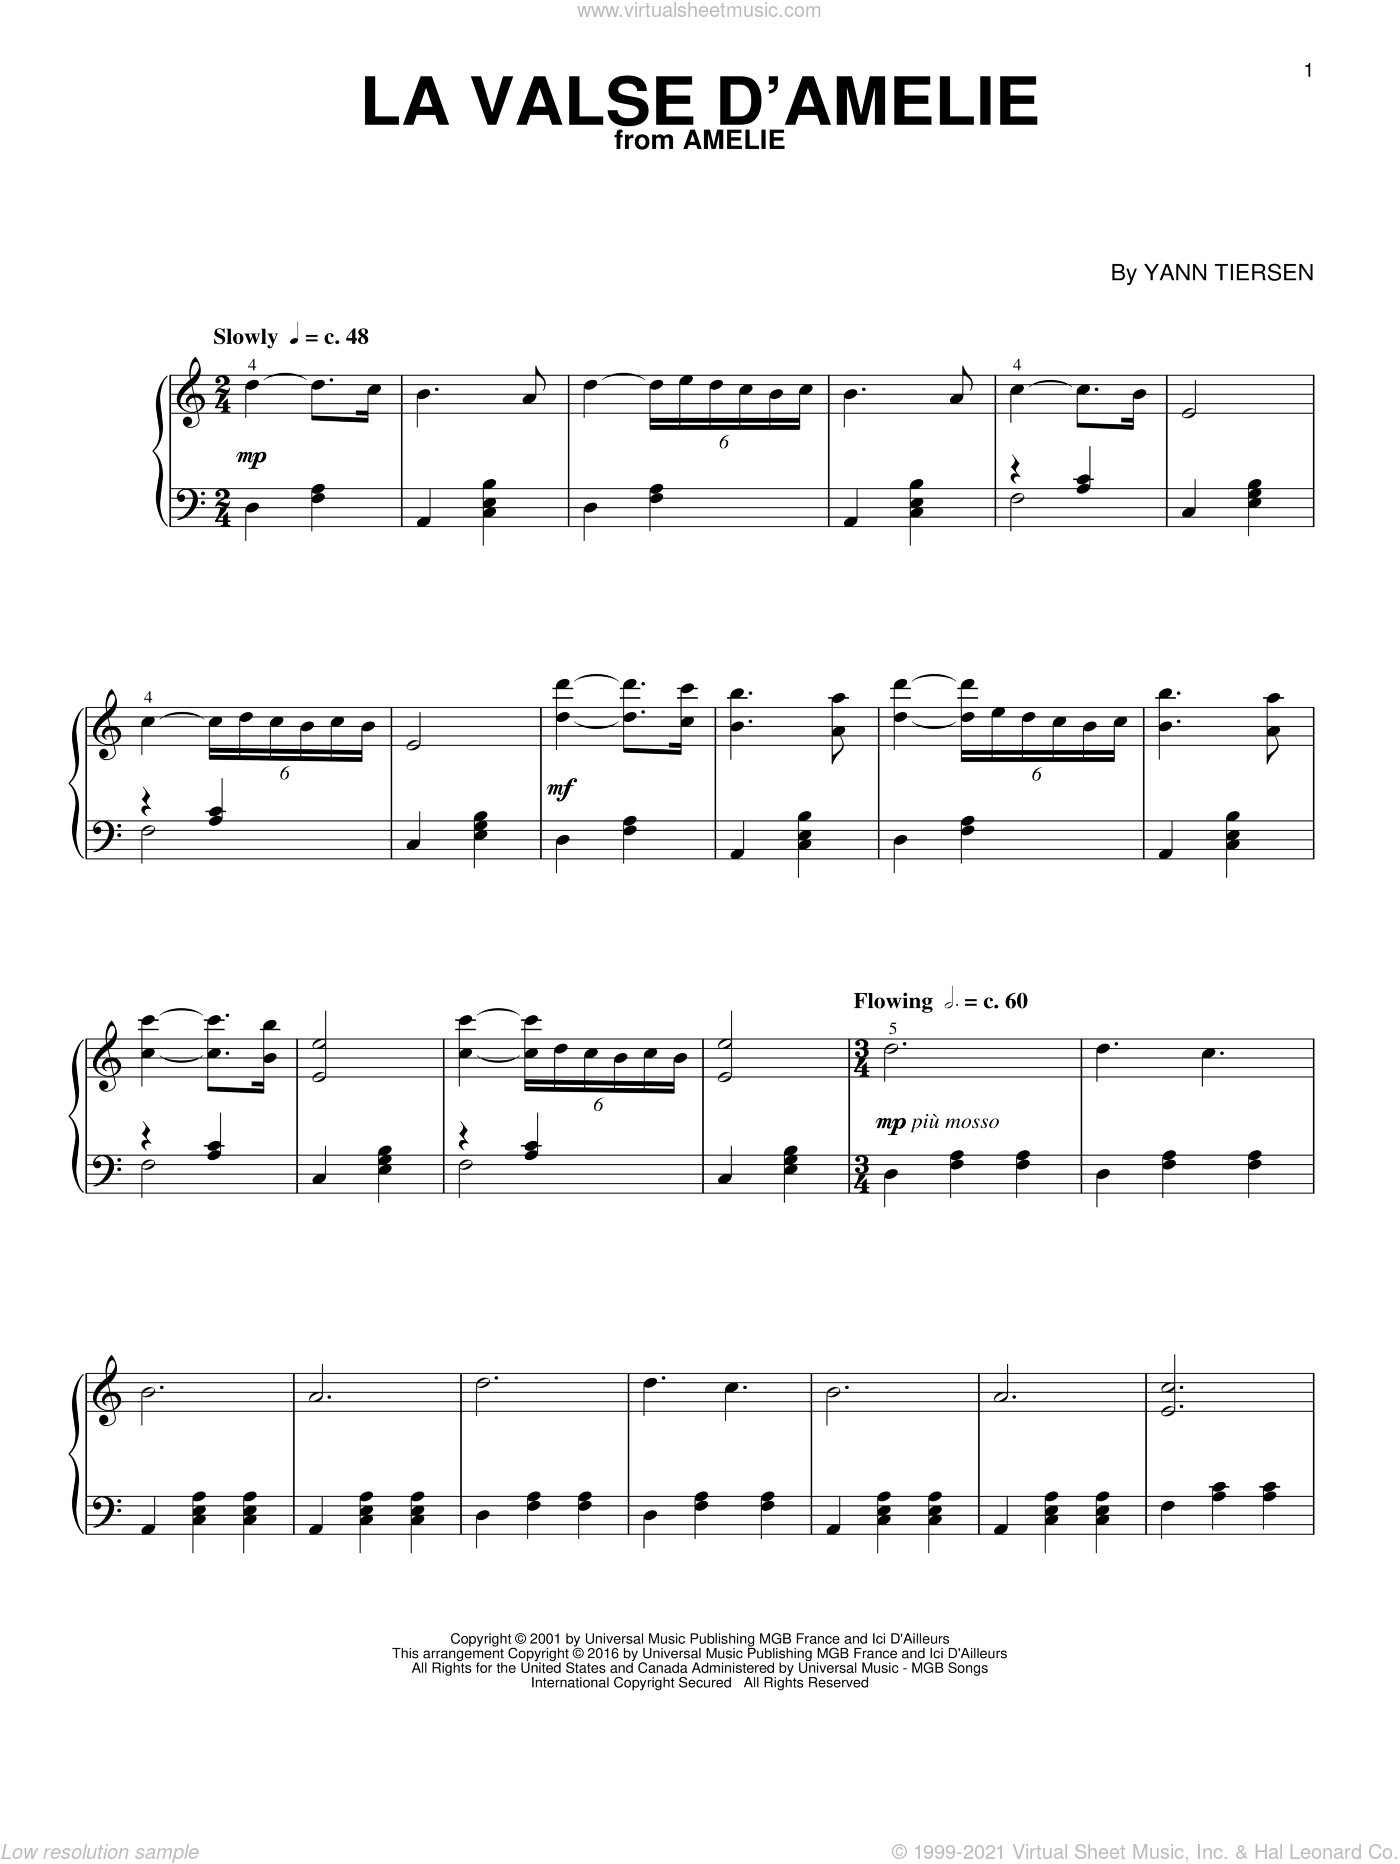 La Valse D'Amelie sheet music for piano solo by Yann Tiersen, classical score, intermediate skill level